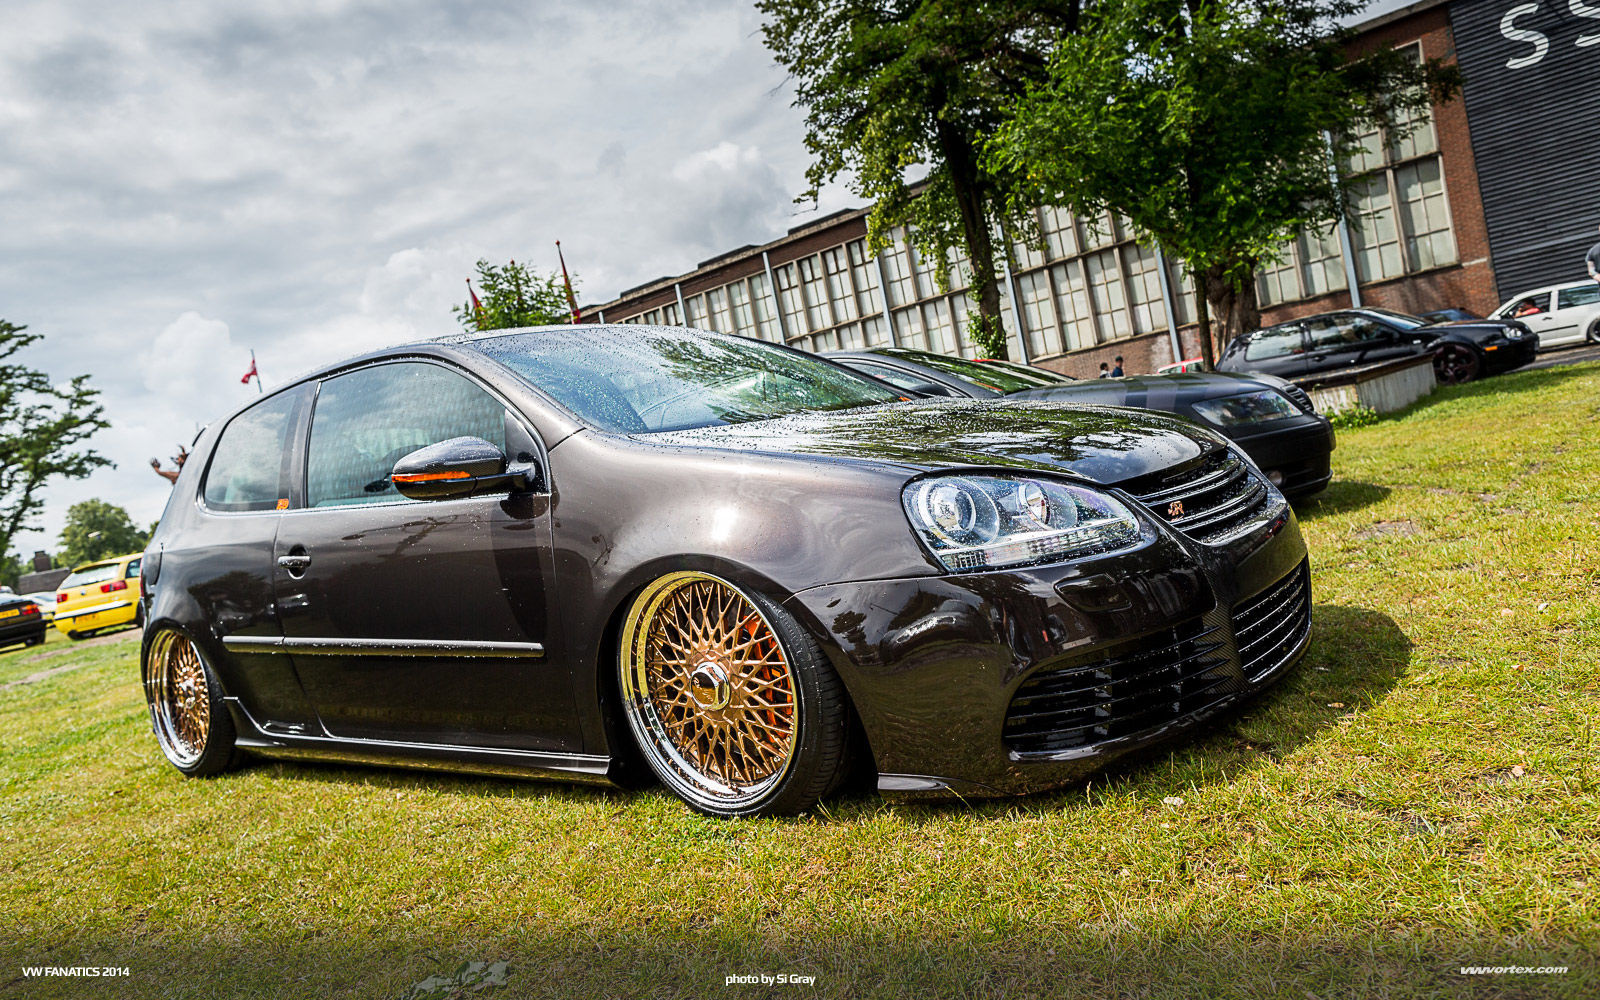 VWFanatics-2014-Si-Gray-477